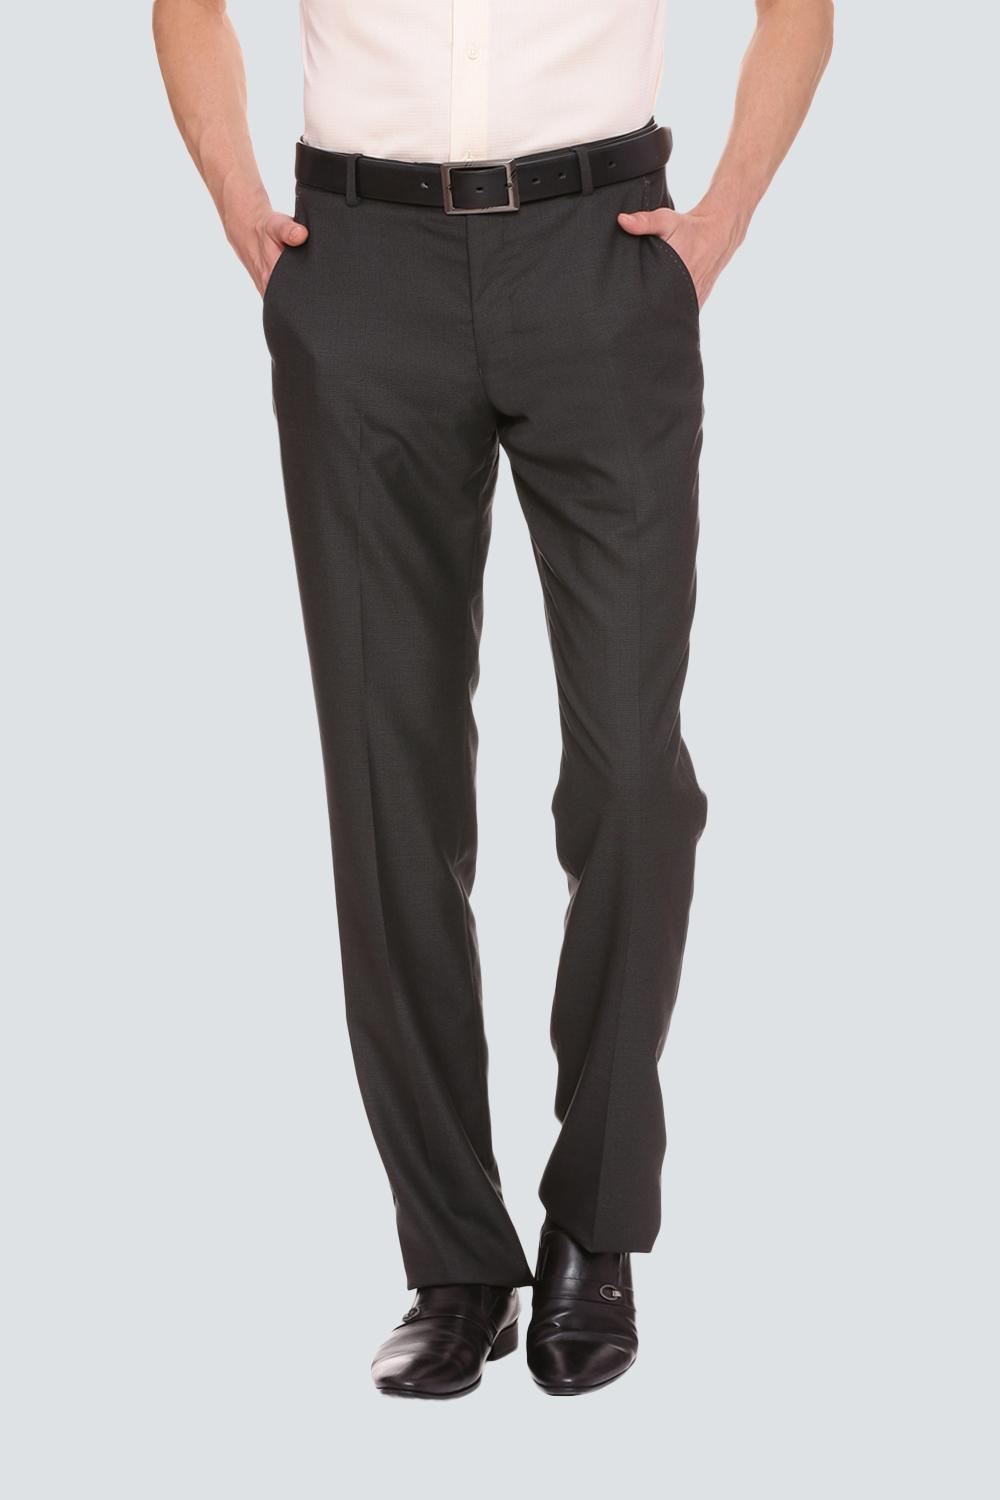 892351508a9 Louis Philippe Trousers & Chinos, Louis Philippe Grey Trousers for Men at  Louisphilippe.com